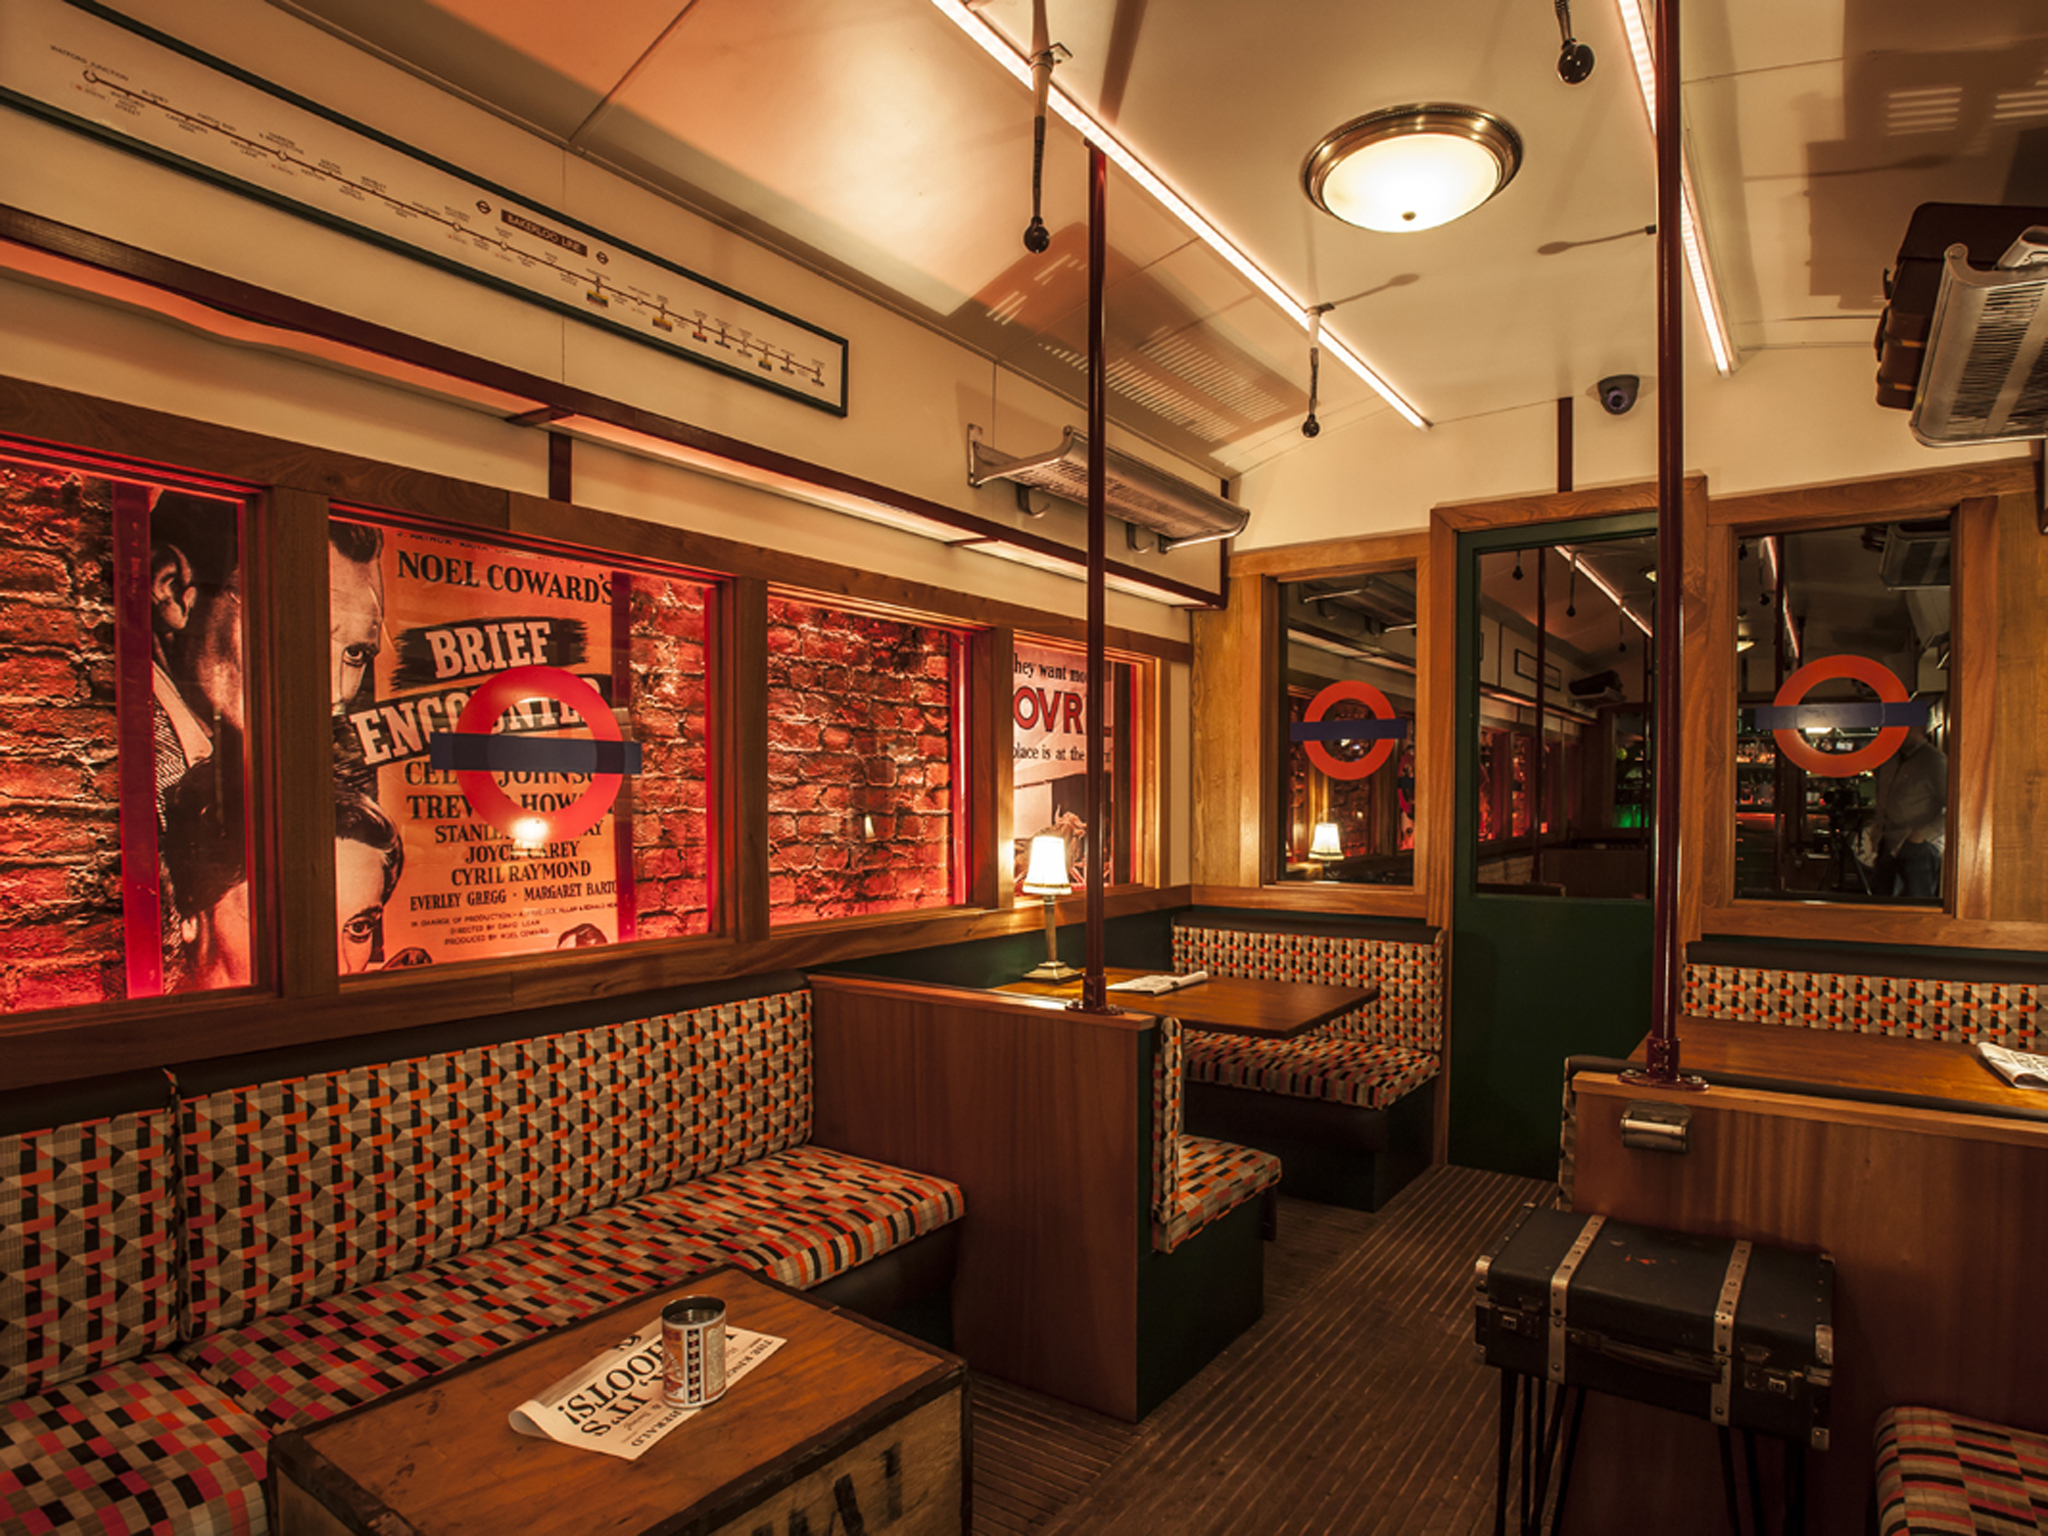 The best quirky bars and pubs